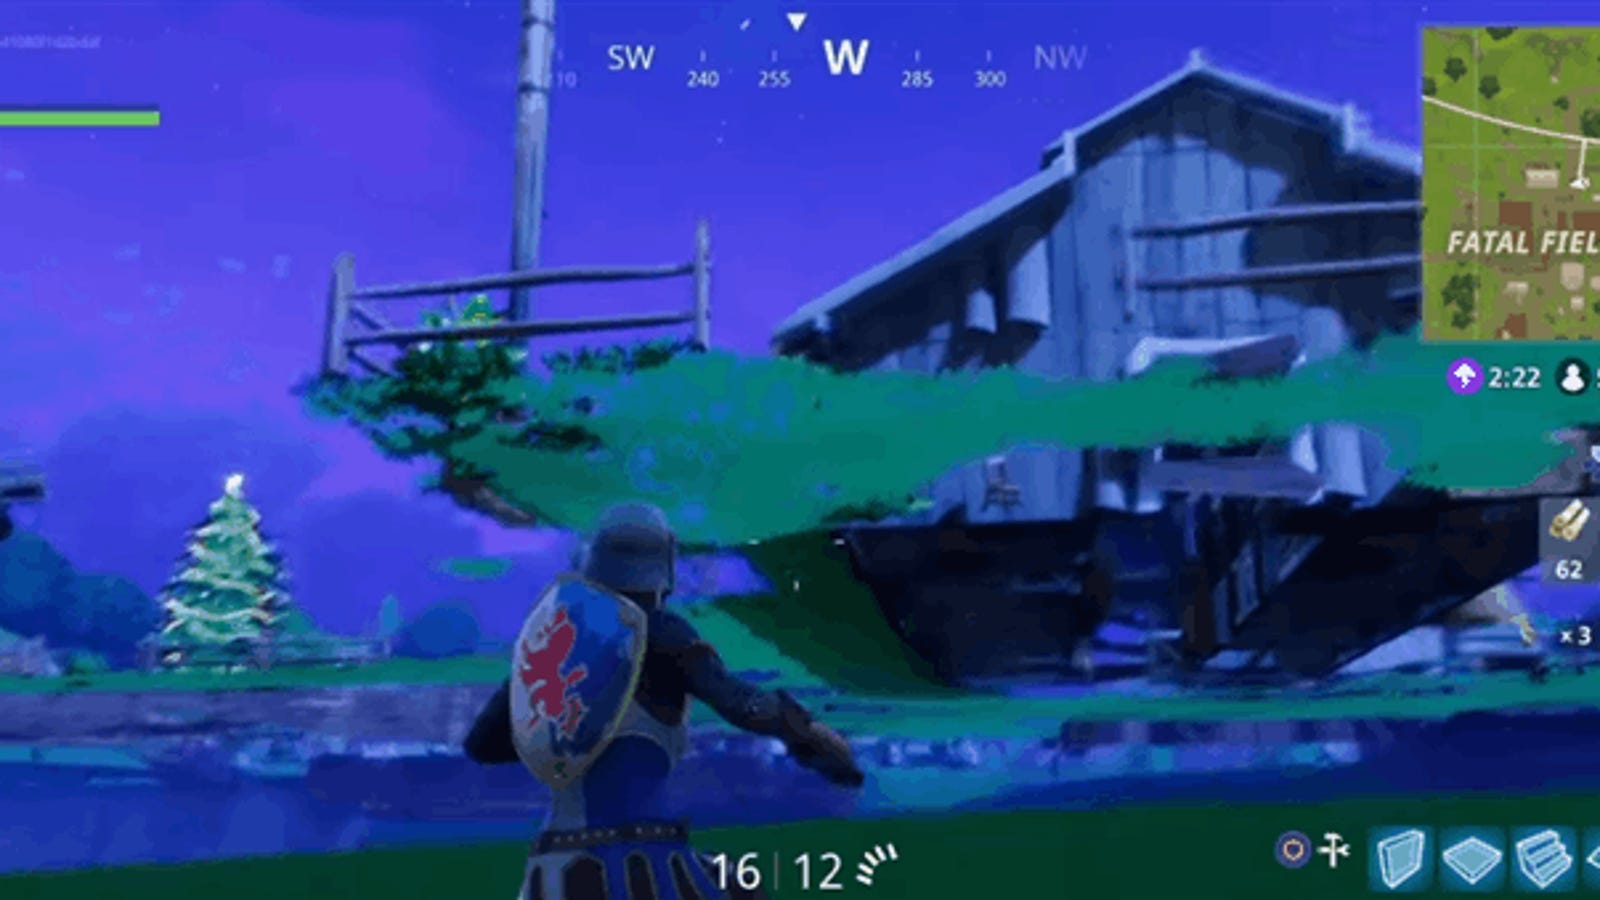 fortnite players have found a way to glitch under the map and keep killing update - fortnite 2 player maps